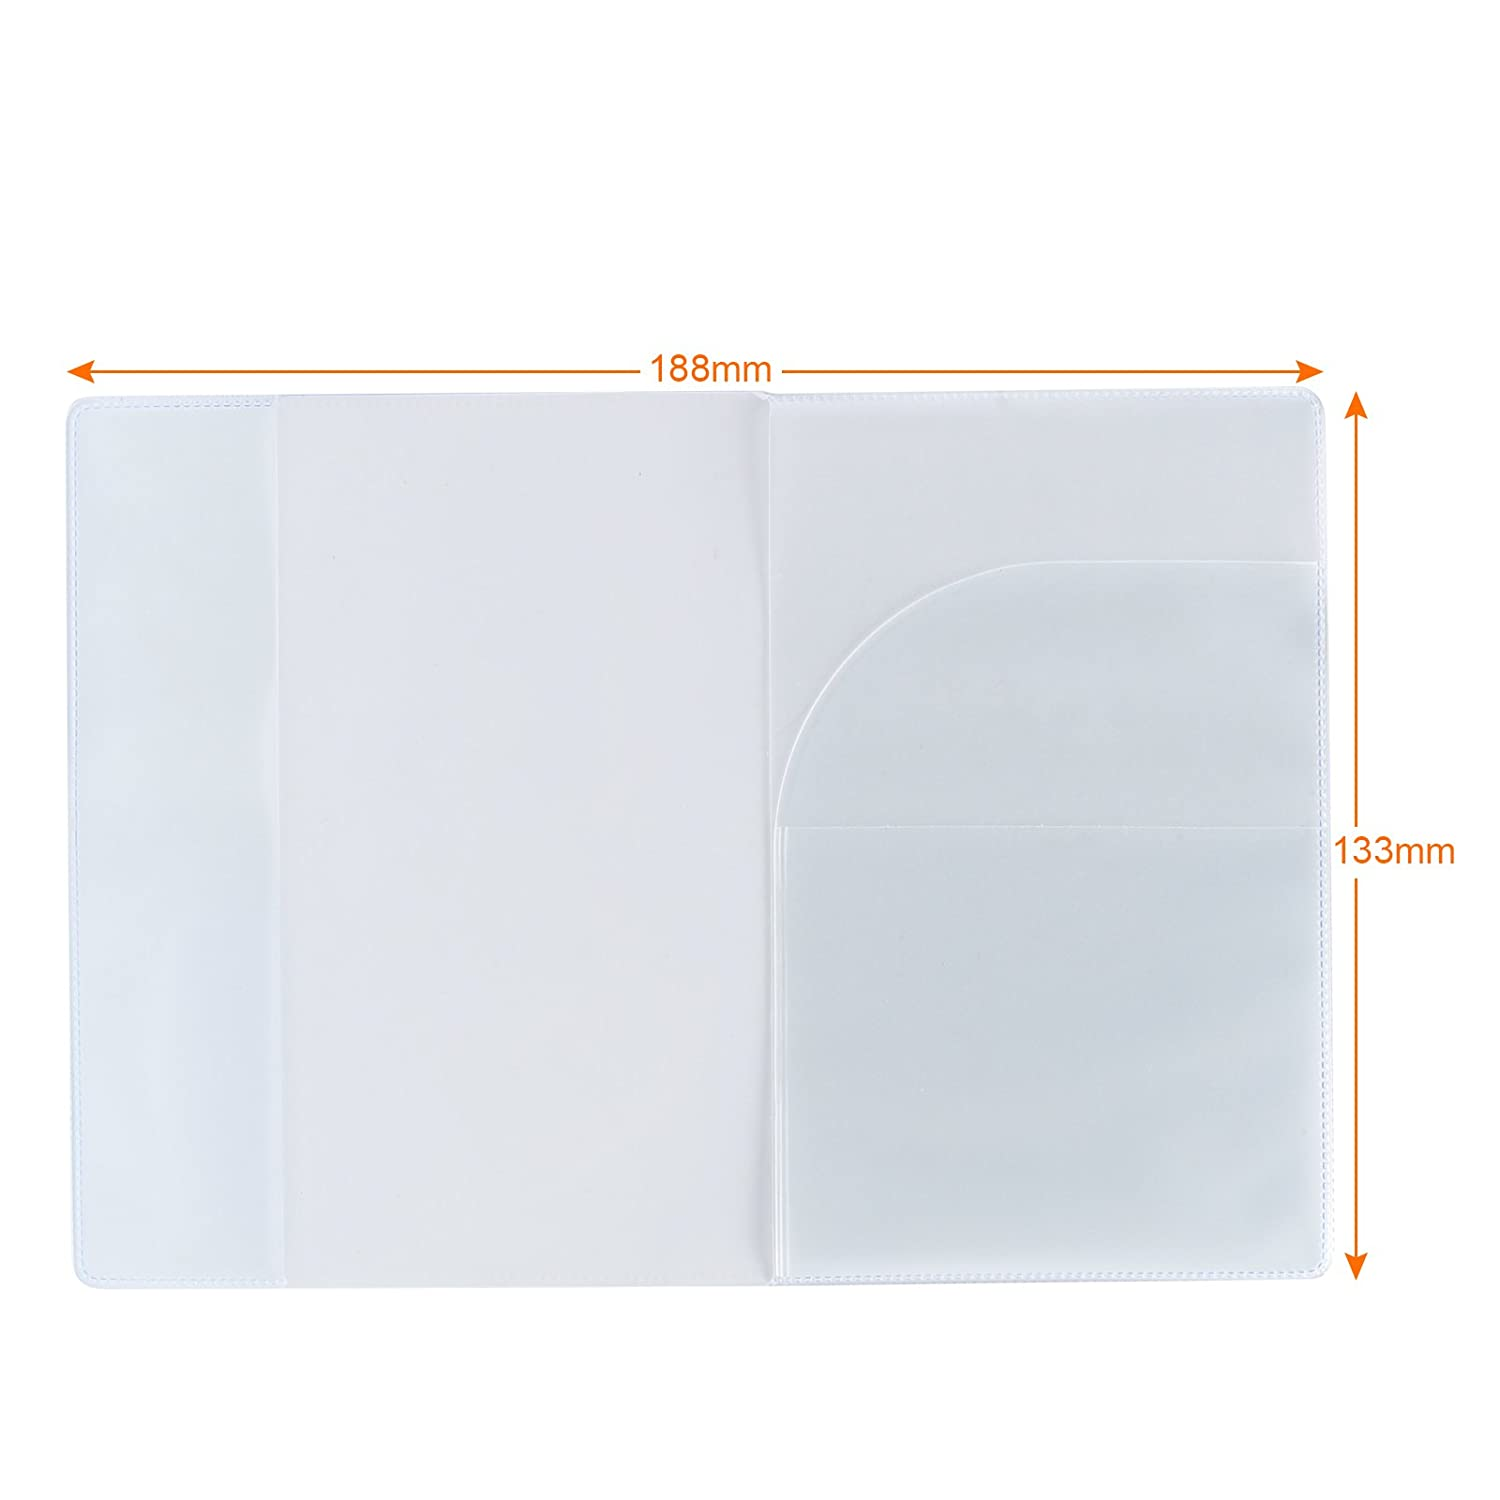 Pack of 5 Kesoto Passport Cover Protector Case Clear Plastic Vinyl ID Card Holder